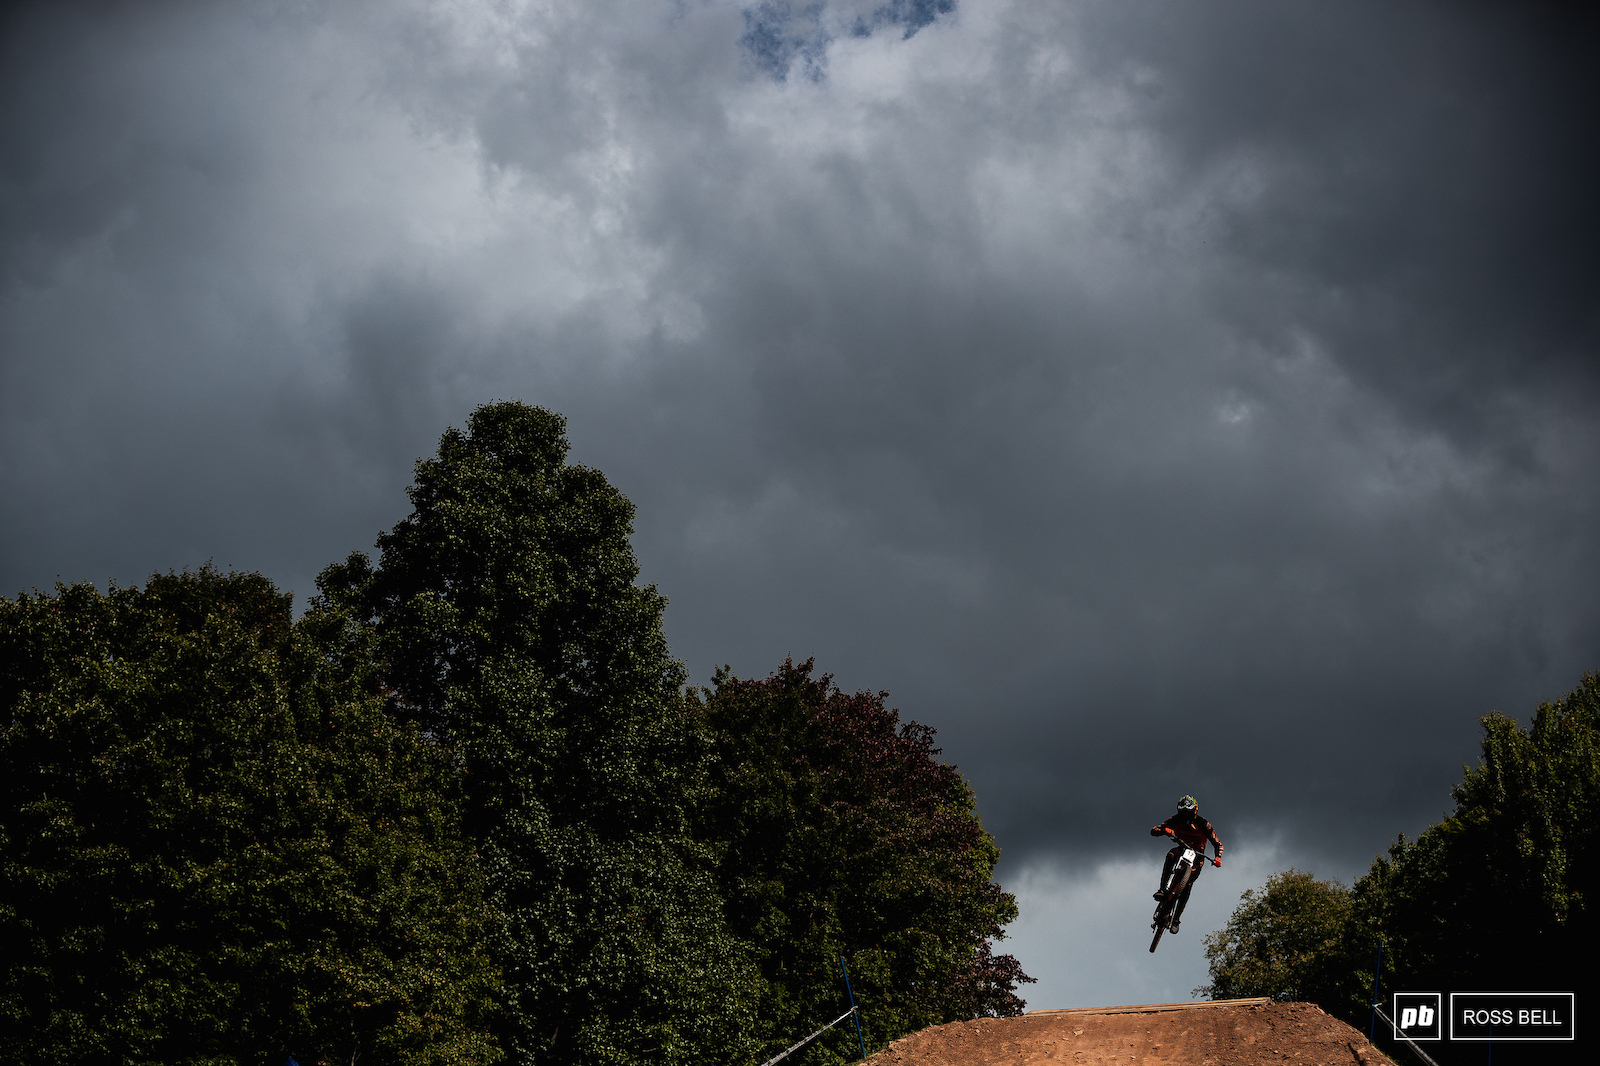 Mark Wallace launches the final jump as moody skies roll over the hills surrounding Snowshoe.